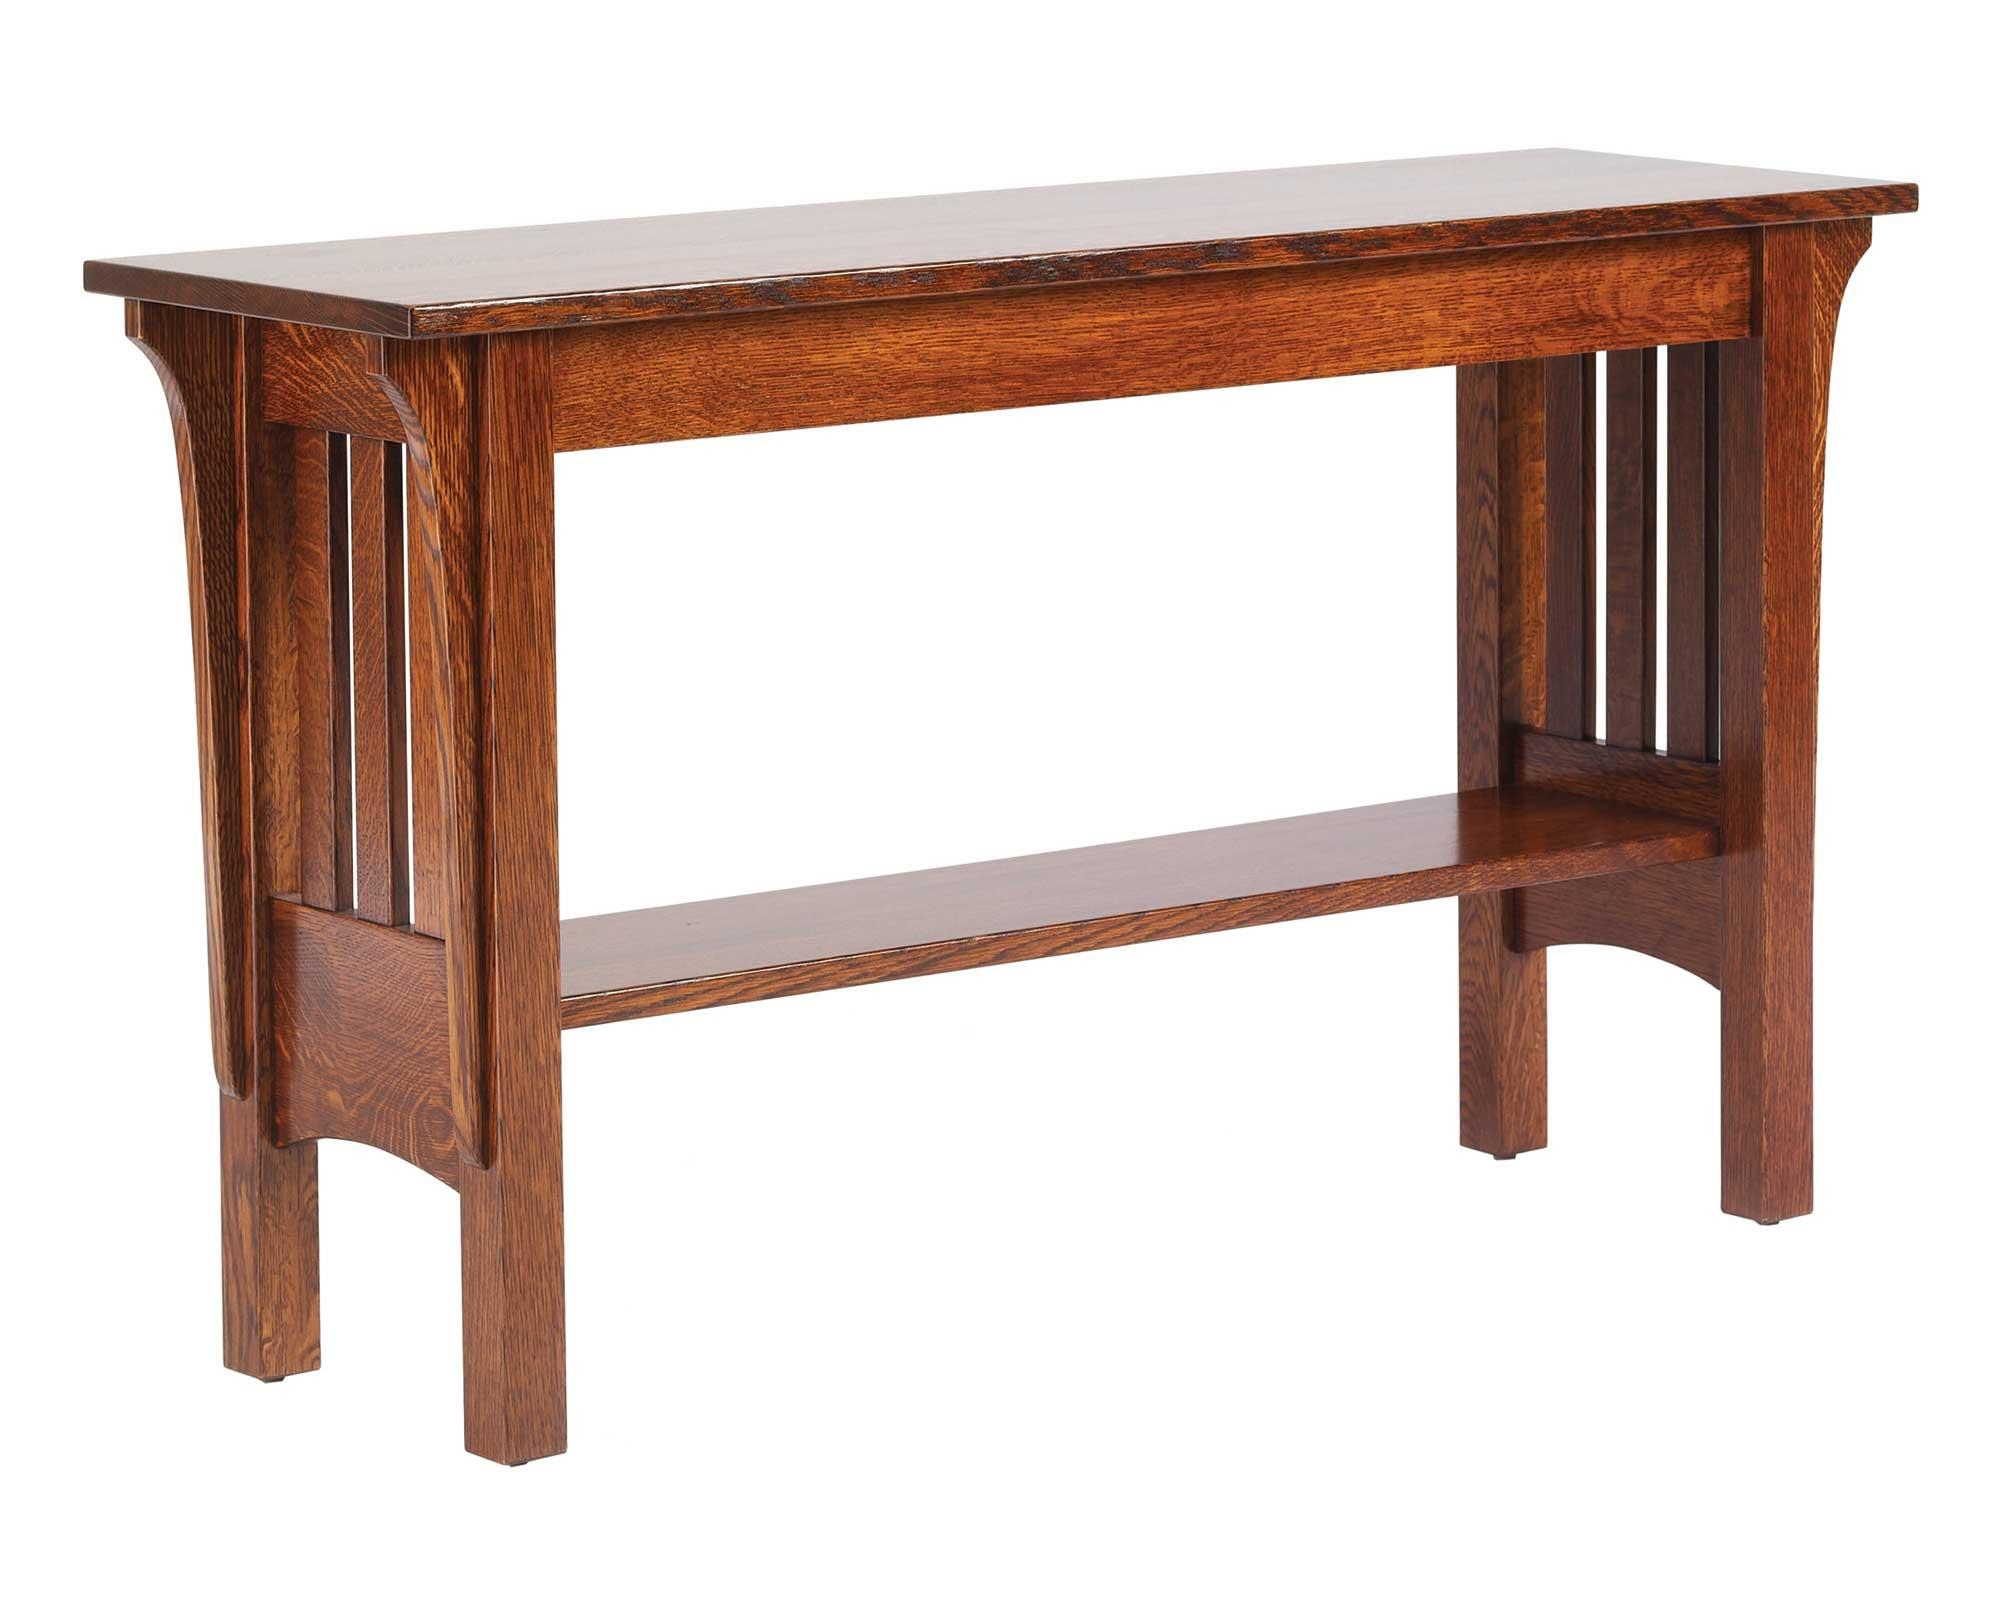 Cherry Wood Sofa Table With Ideas Hd Gallery 13495 | Kengire With Regard To Cherry Wood Sofa Tables (Image 5 of 20)